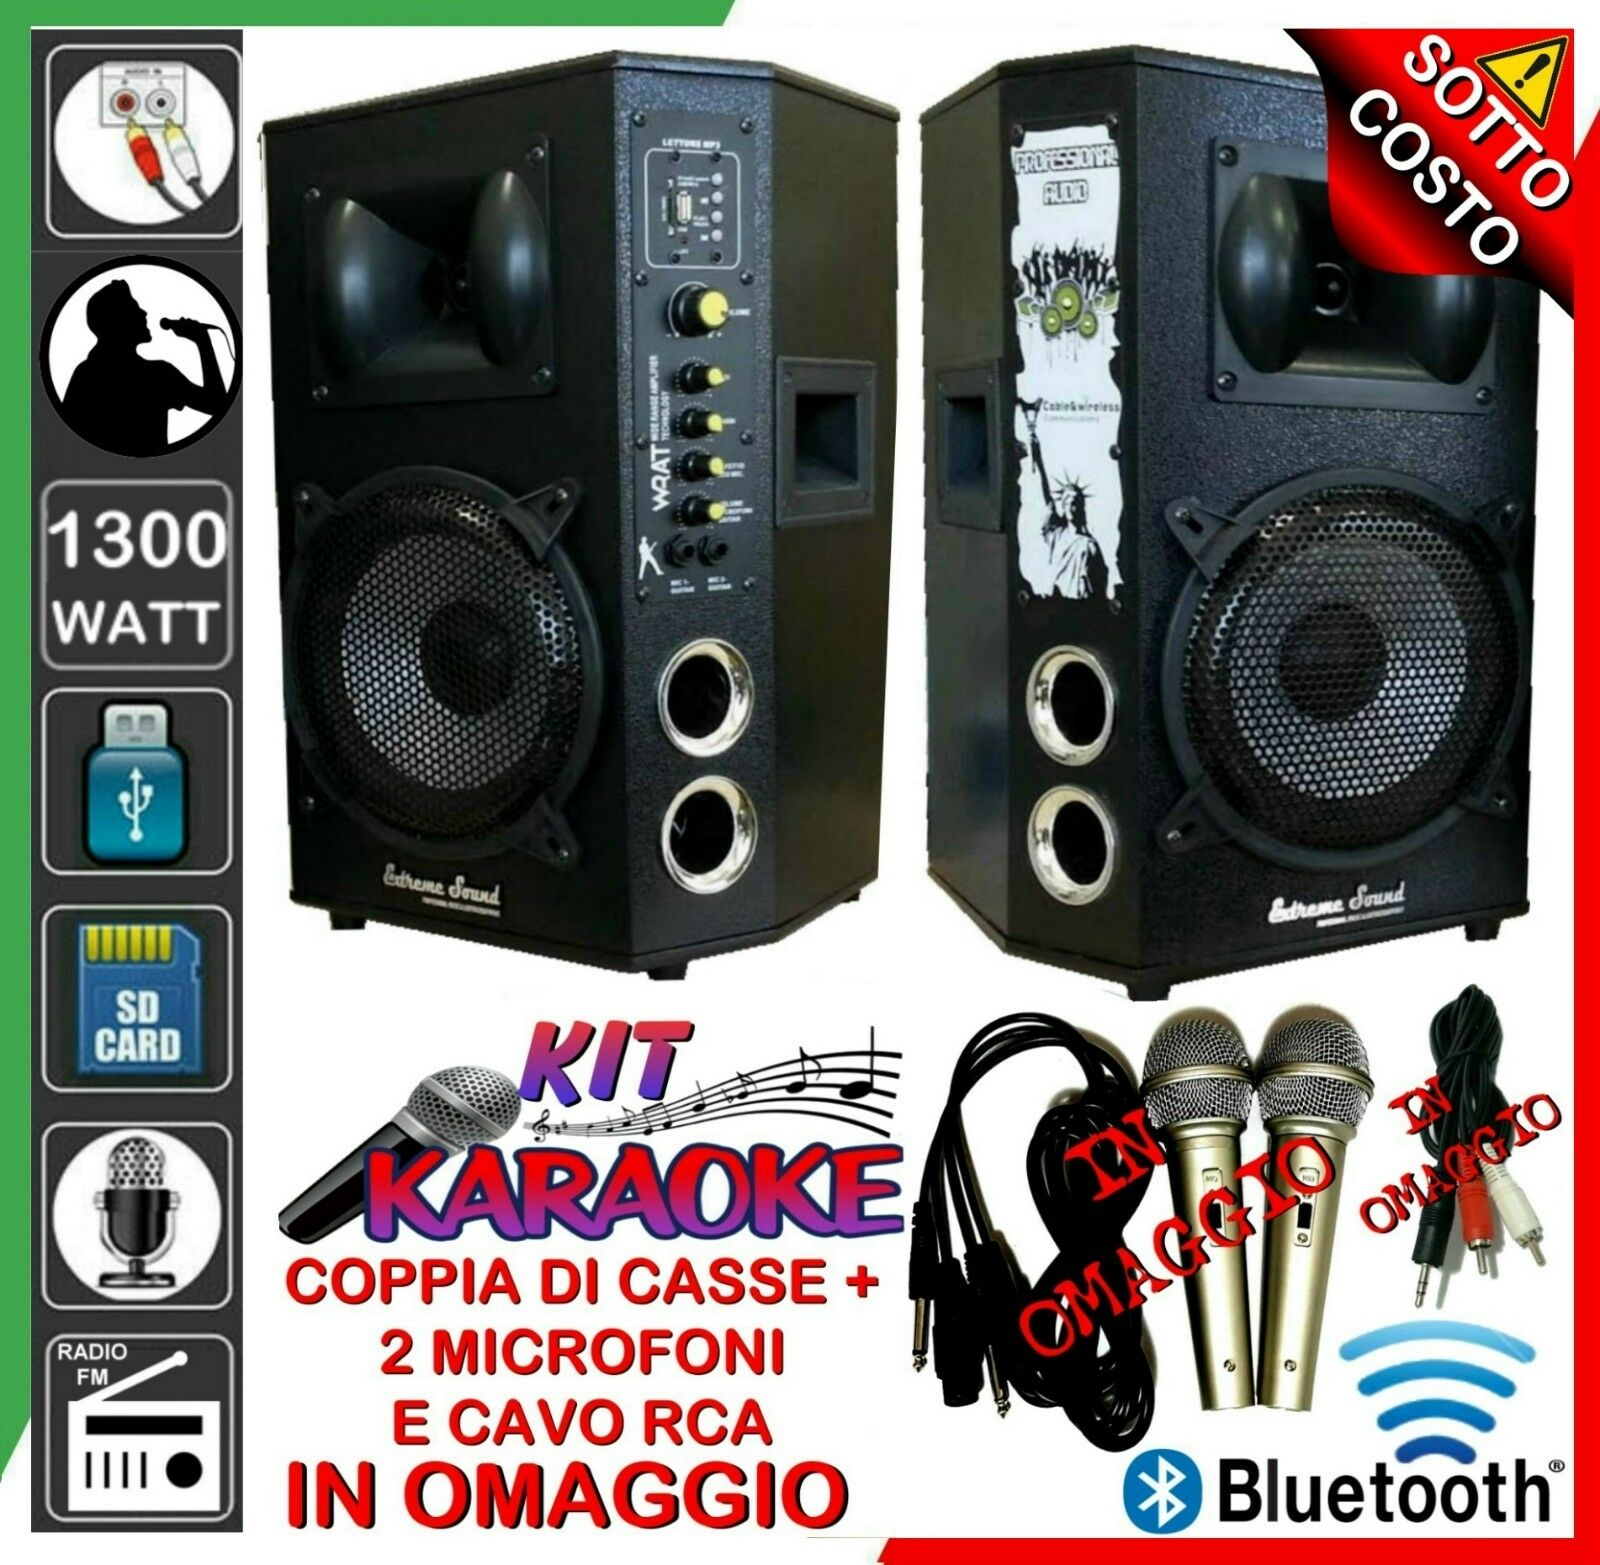 COPPIA DI CASSE 1300W IMPIANTO KIT KARAOKE MICROFONI RCA Mp3 Bluetooth USB RADIO